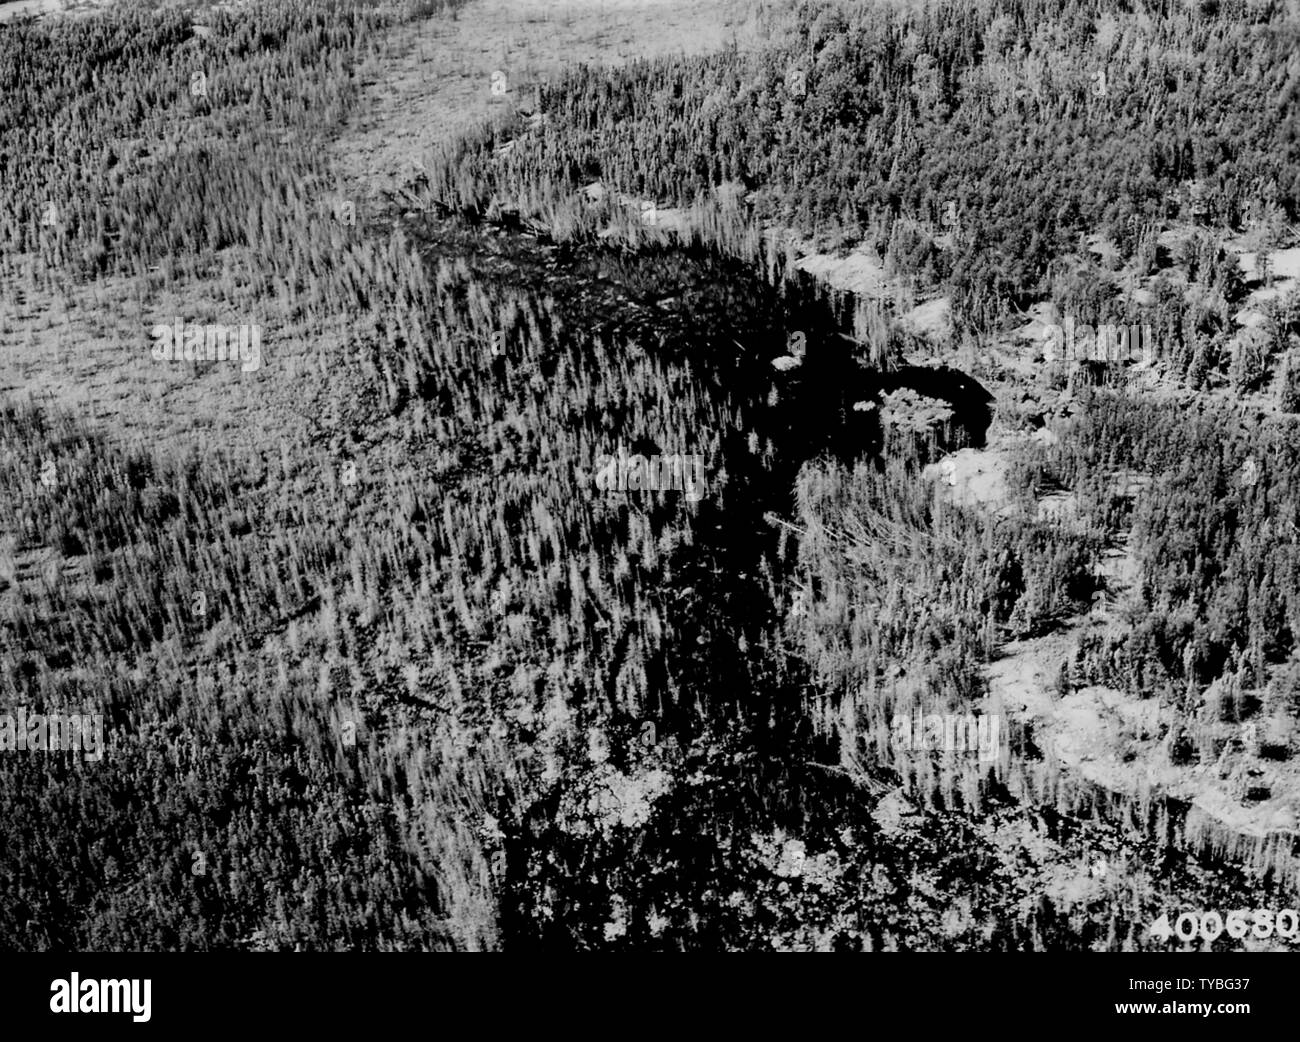 Photograph of Beaver Pond; Scope and content:  Original caption: Beaver pond, showing flooded spruce swamp. Note beaver house in open water (center). View taken in head-water stream of the Stuart River 1 1/2 miles northeast of Portage River CCC Camp. (LaCroix Ranger Dist.). Stock Photo